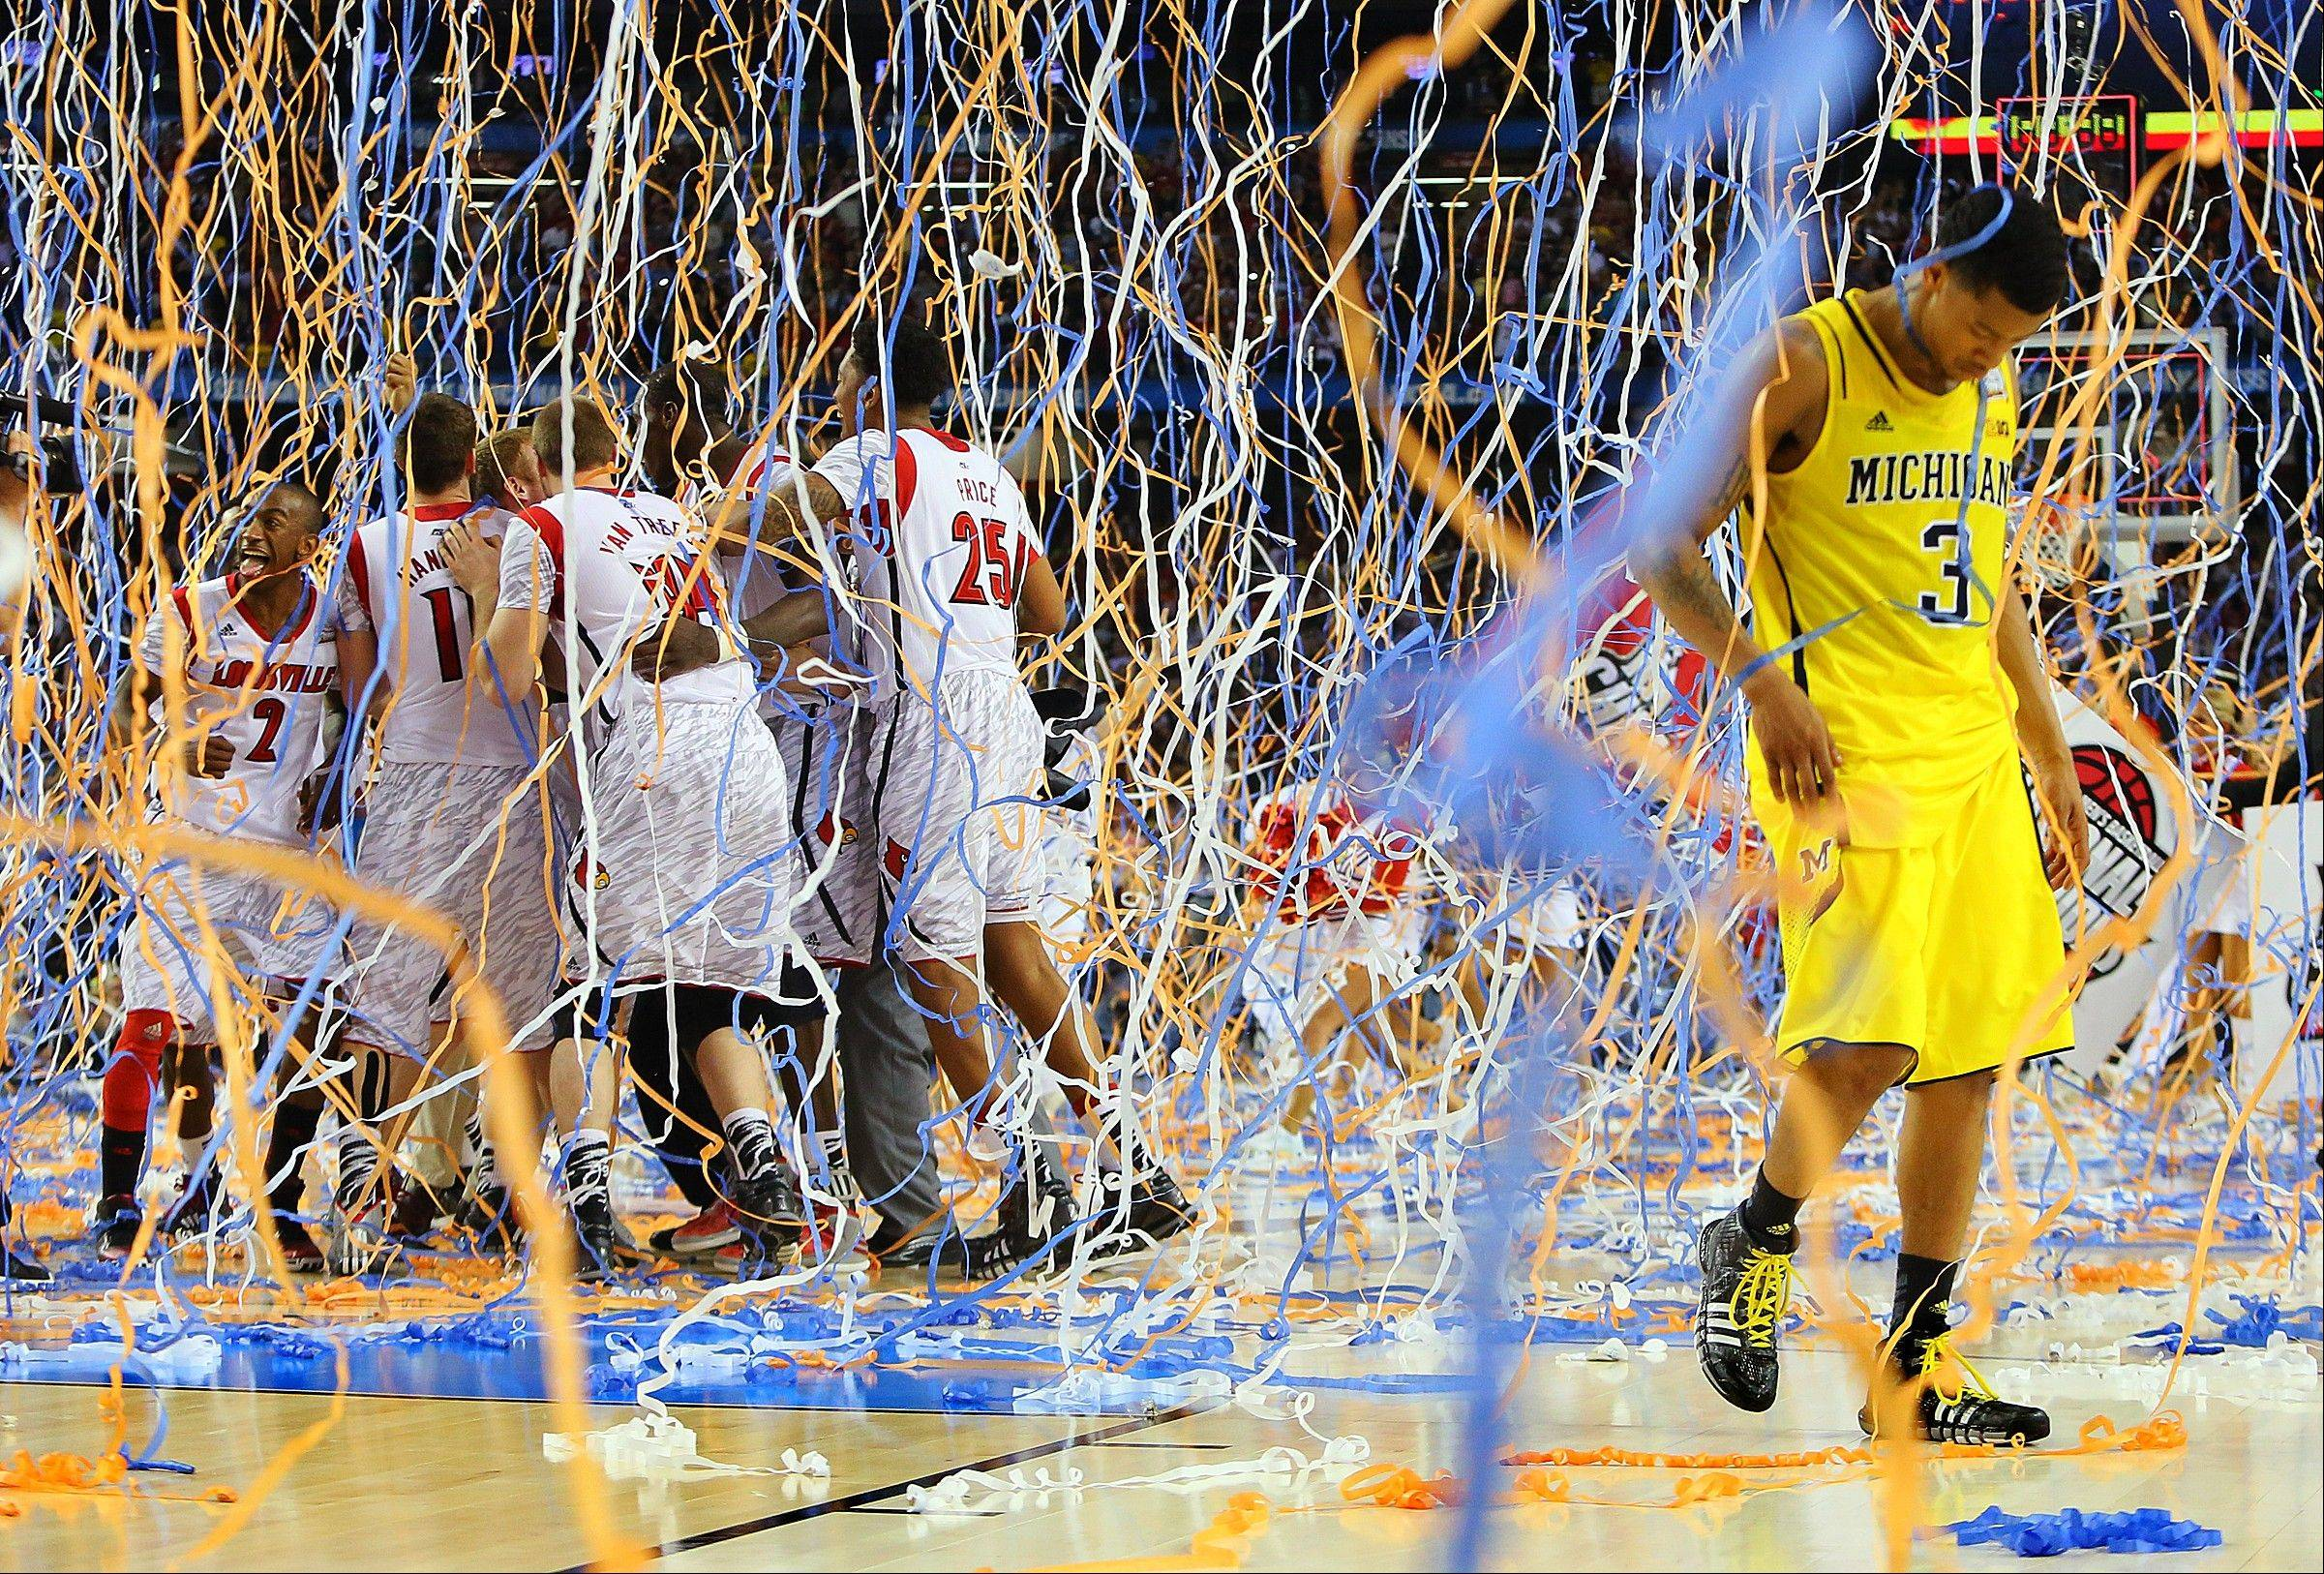 Michigan guard Trey Burke (3) walks off the court as confetti falls on Louisville players, including Russ Smith (2), Luke Hancock (11), Stephan Van Treese (44) and Zach Price (25), after the NCAA Final Four tournament college basketball championship game, Monday in Atlanta. Louisville won 82-76.